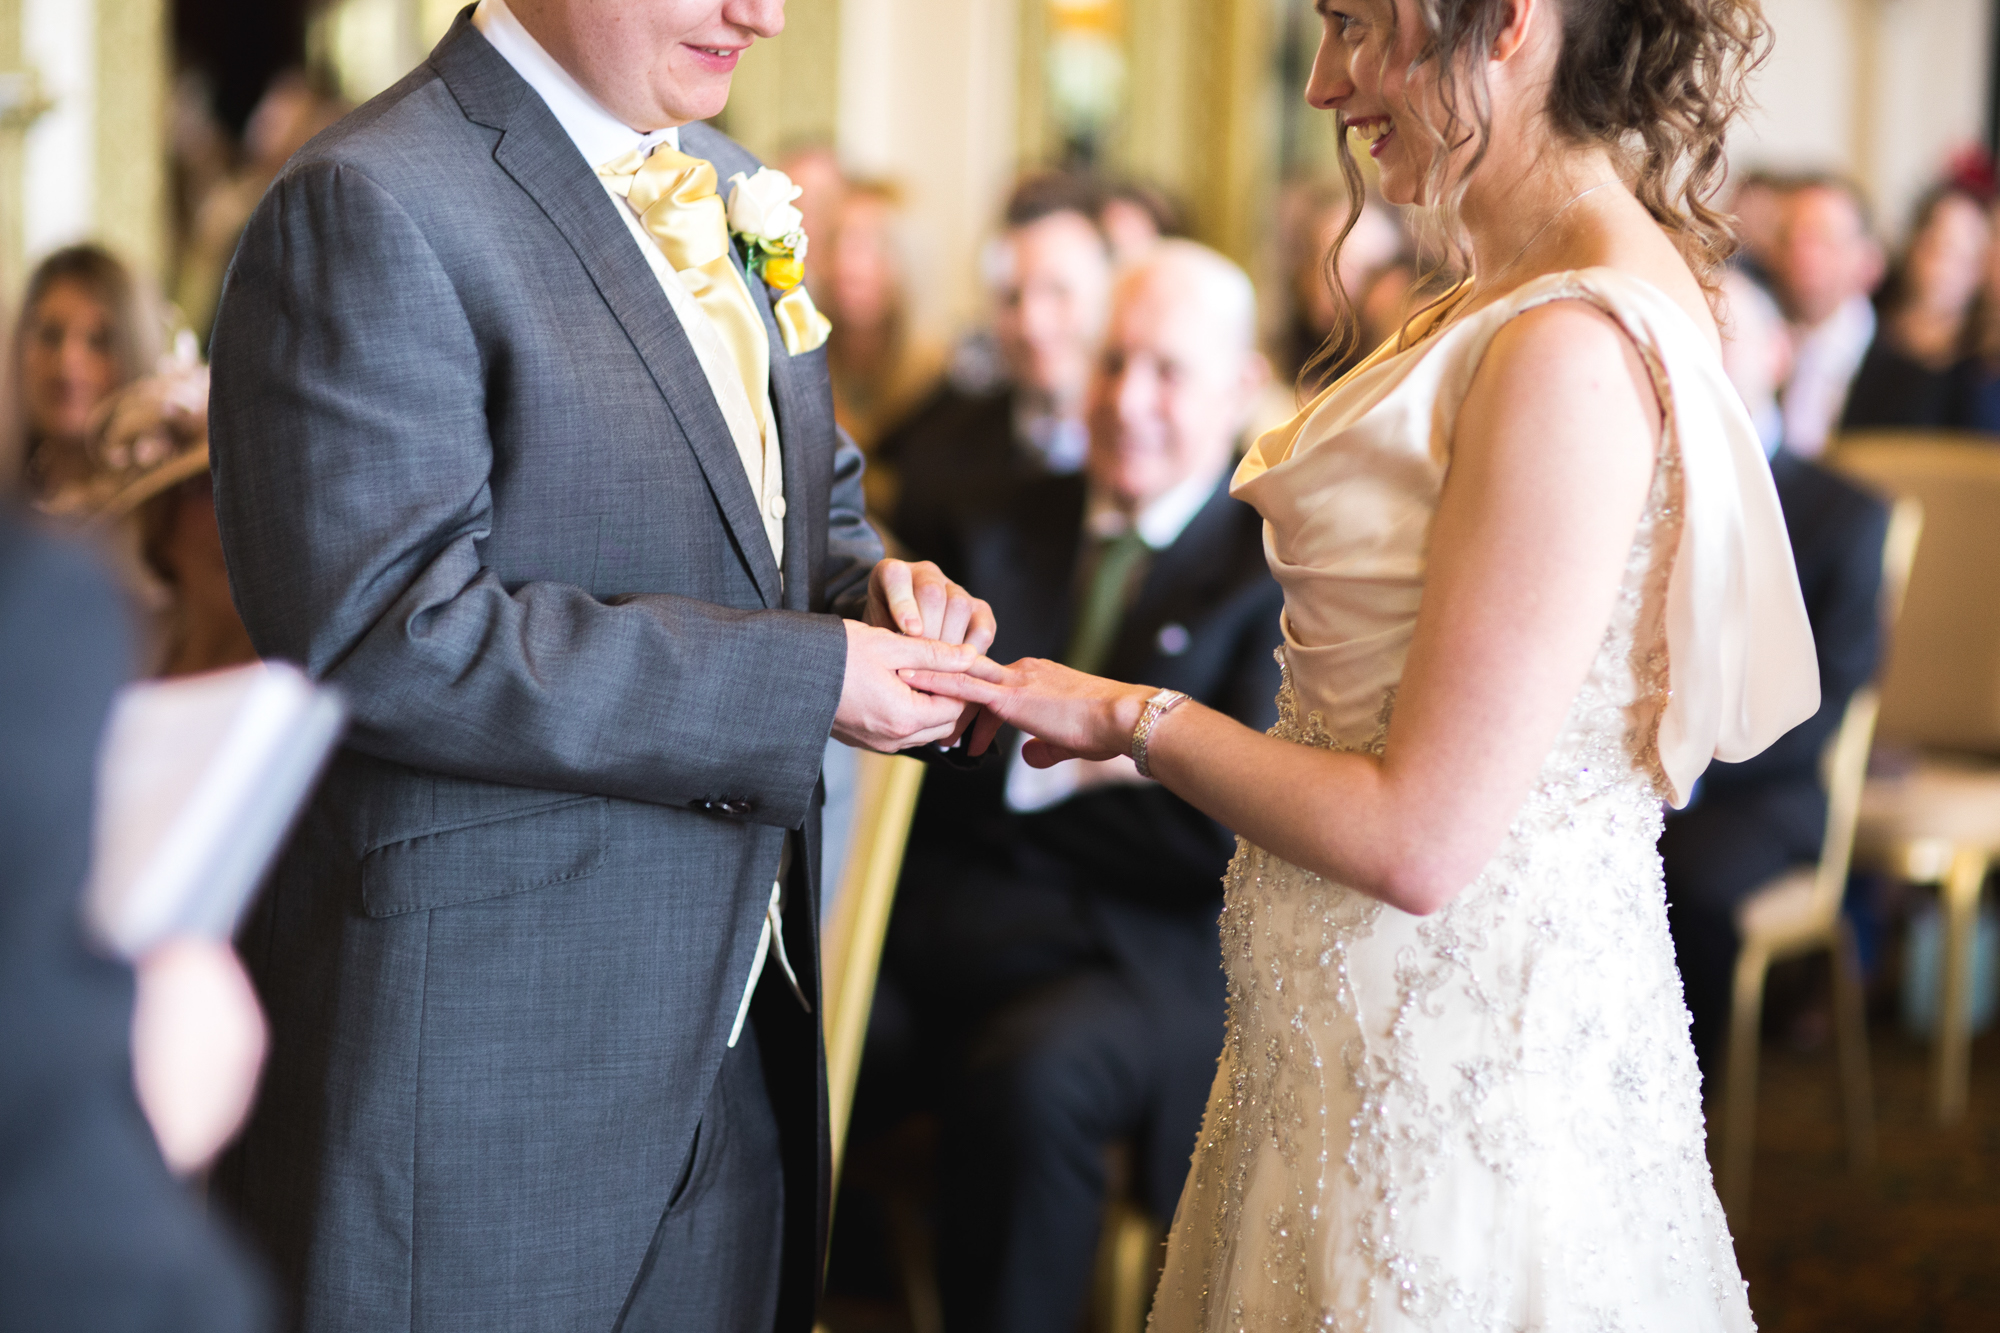 wynyard hall wedding photographer duncan mccall-1023.jpg